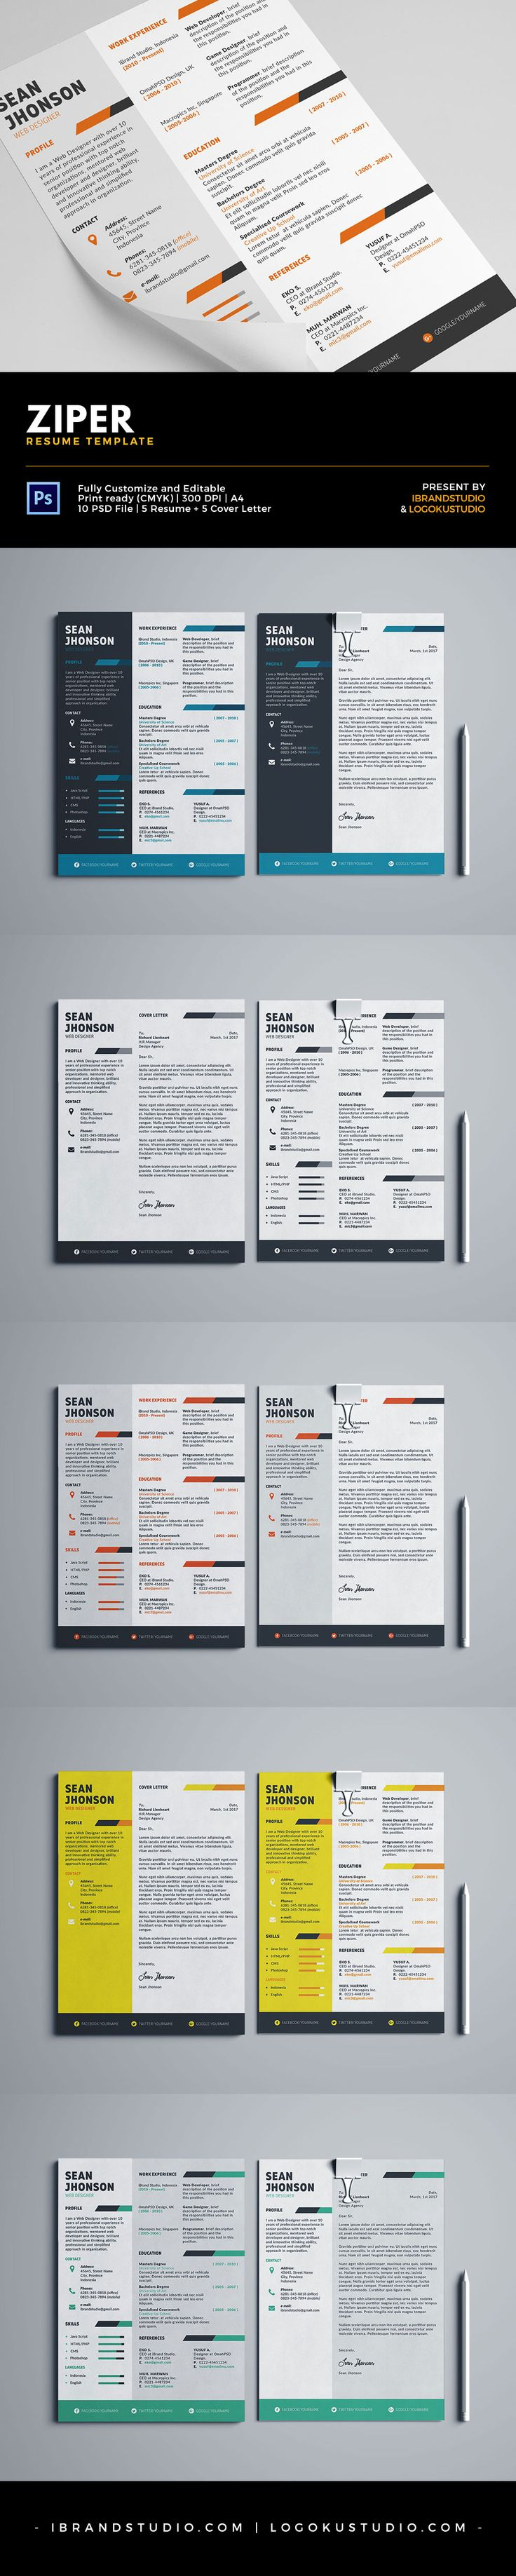 free ziper resume template and cover letter 5 styles psd